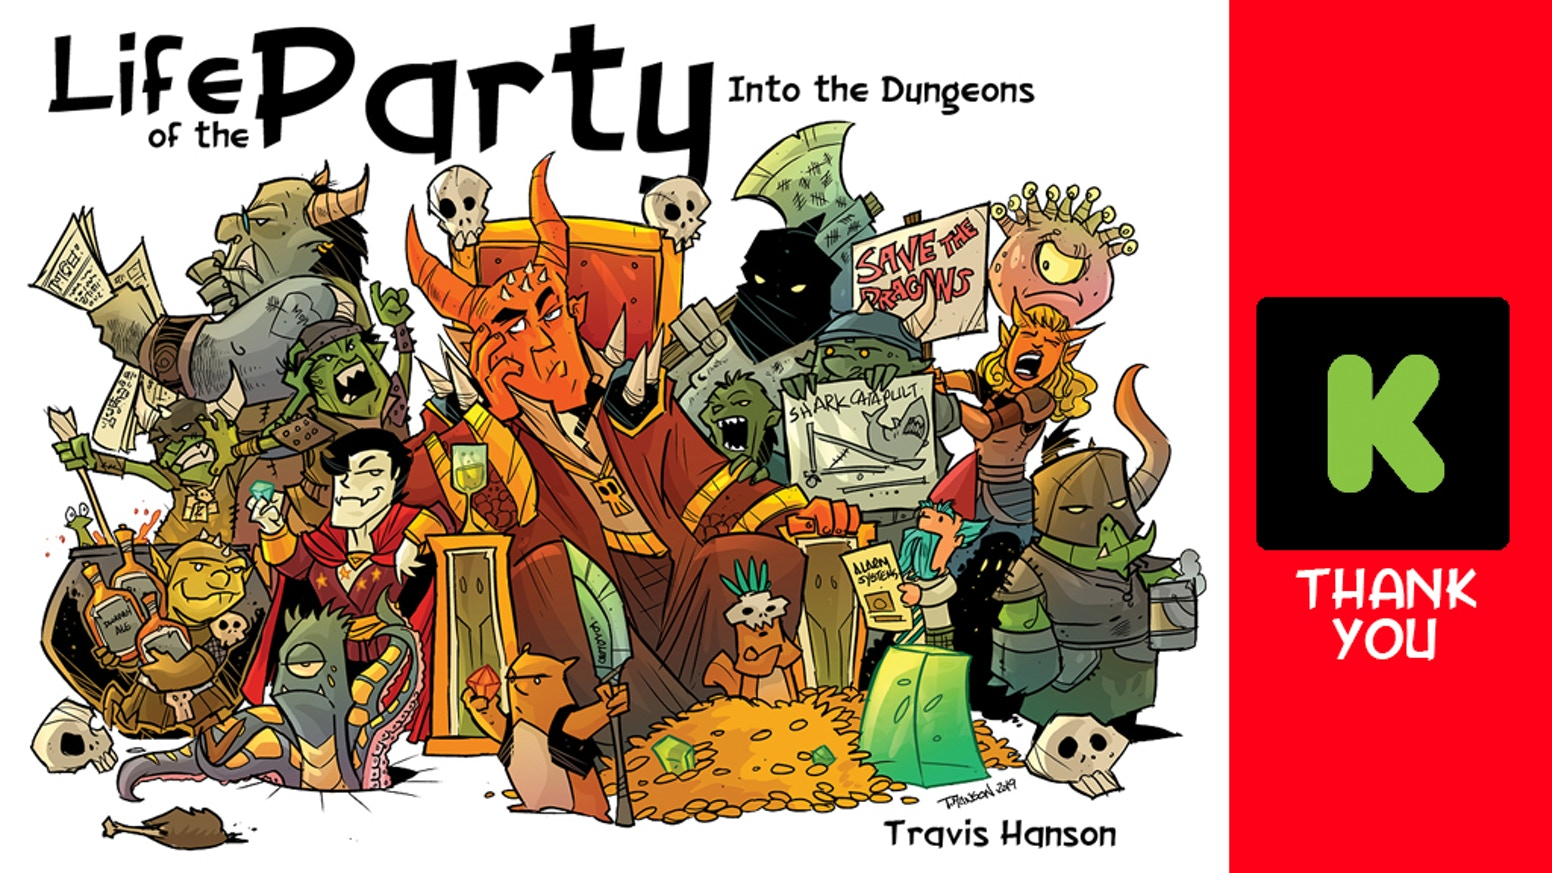 Book 3 of Life of the Party. This time it's Into the Dungeons. This is the 3rd book in the realities of an RPG Comic series.